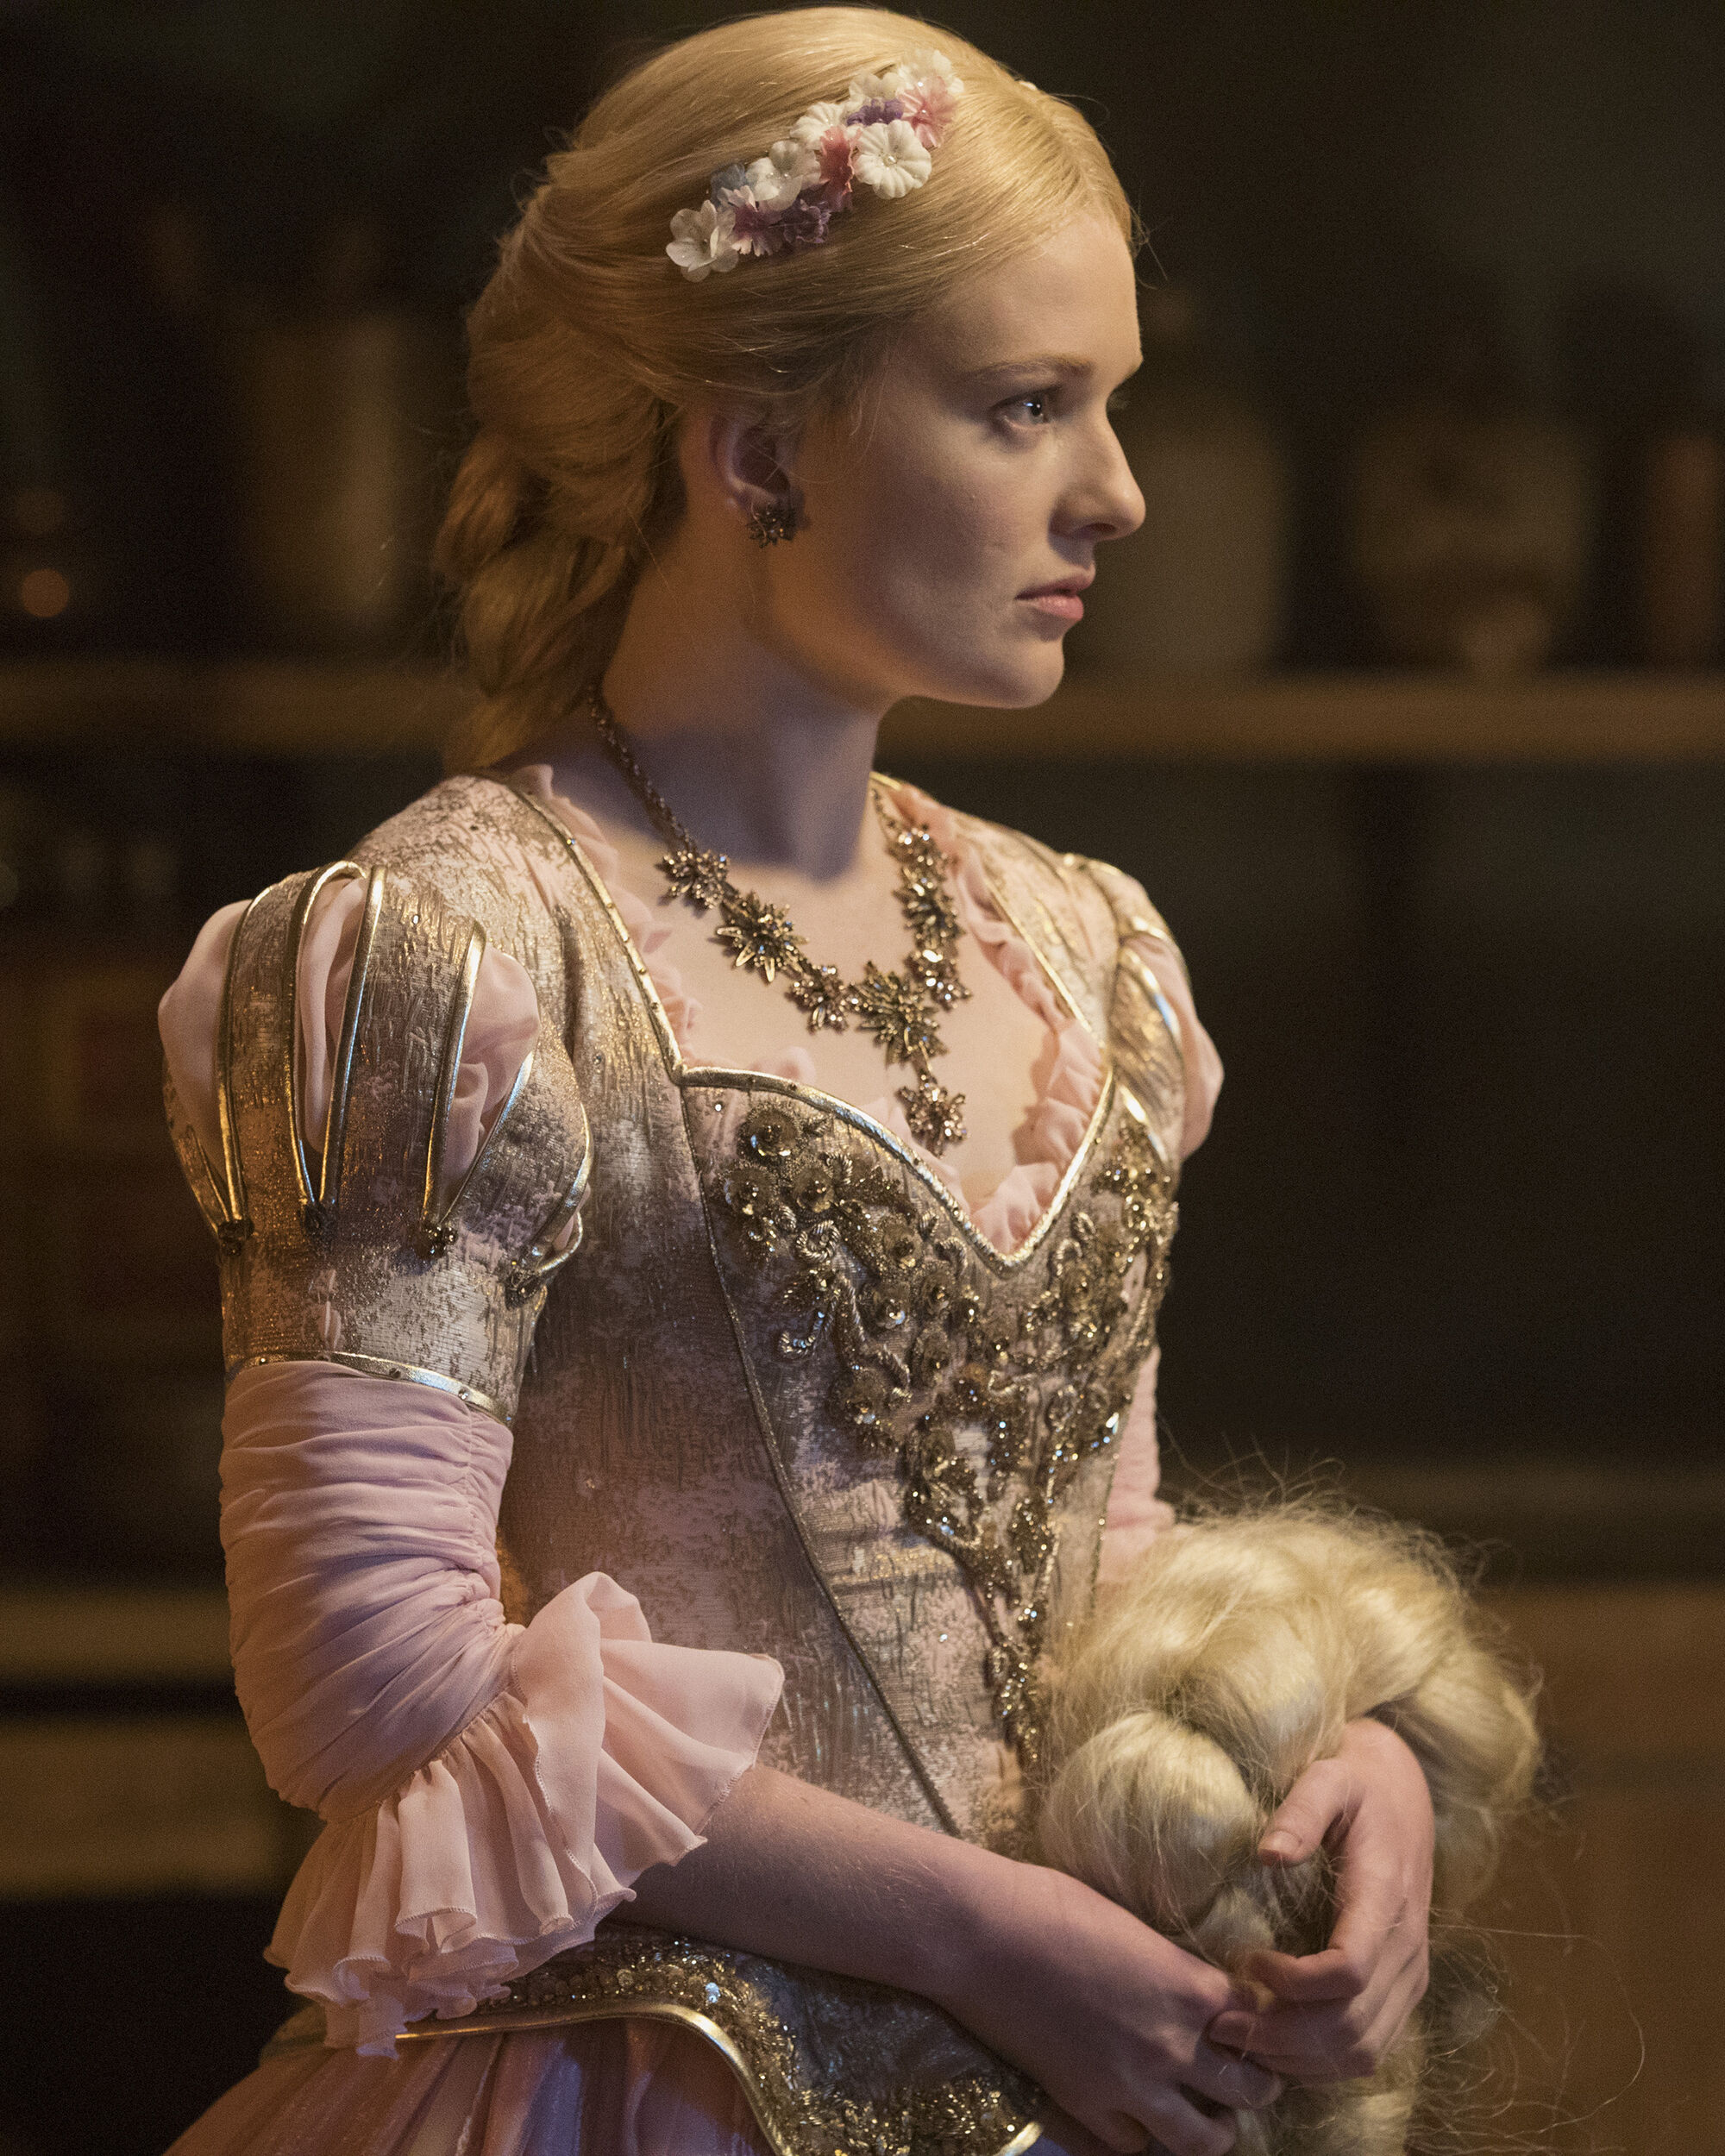 Image Once Upon A Time 7x07 Eloise Gardener